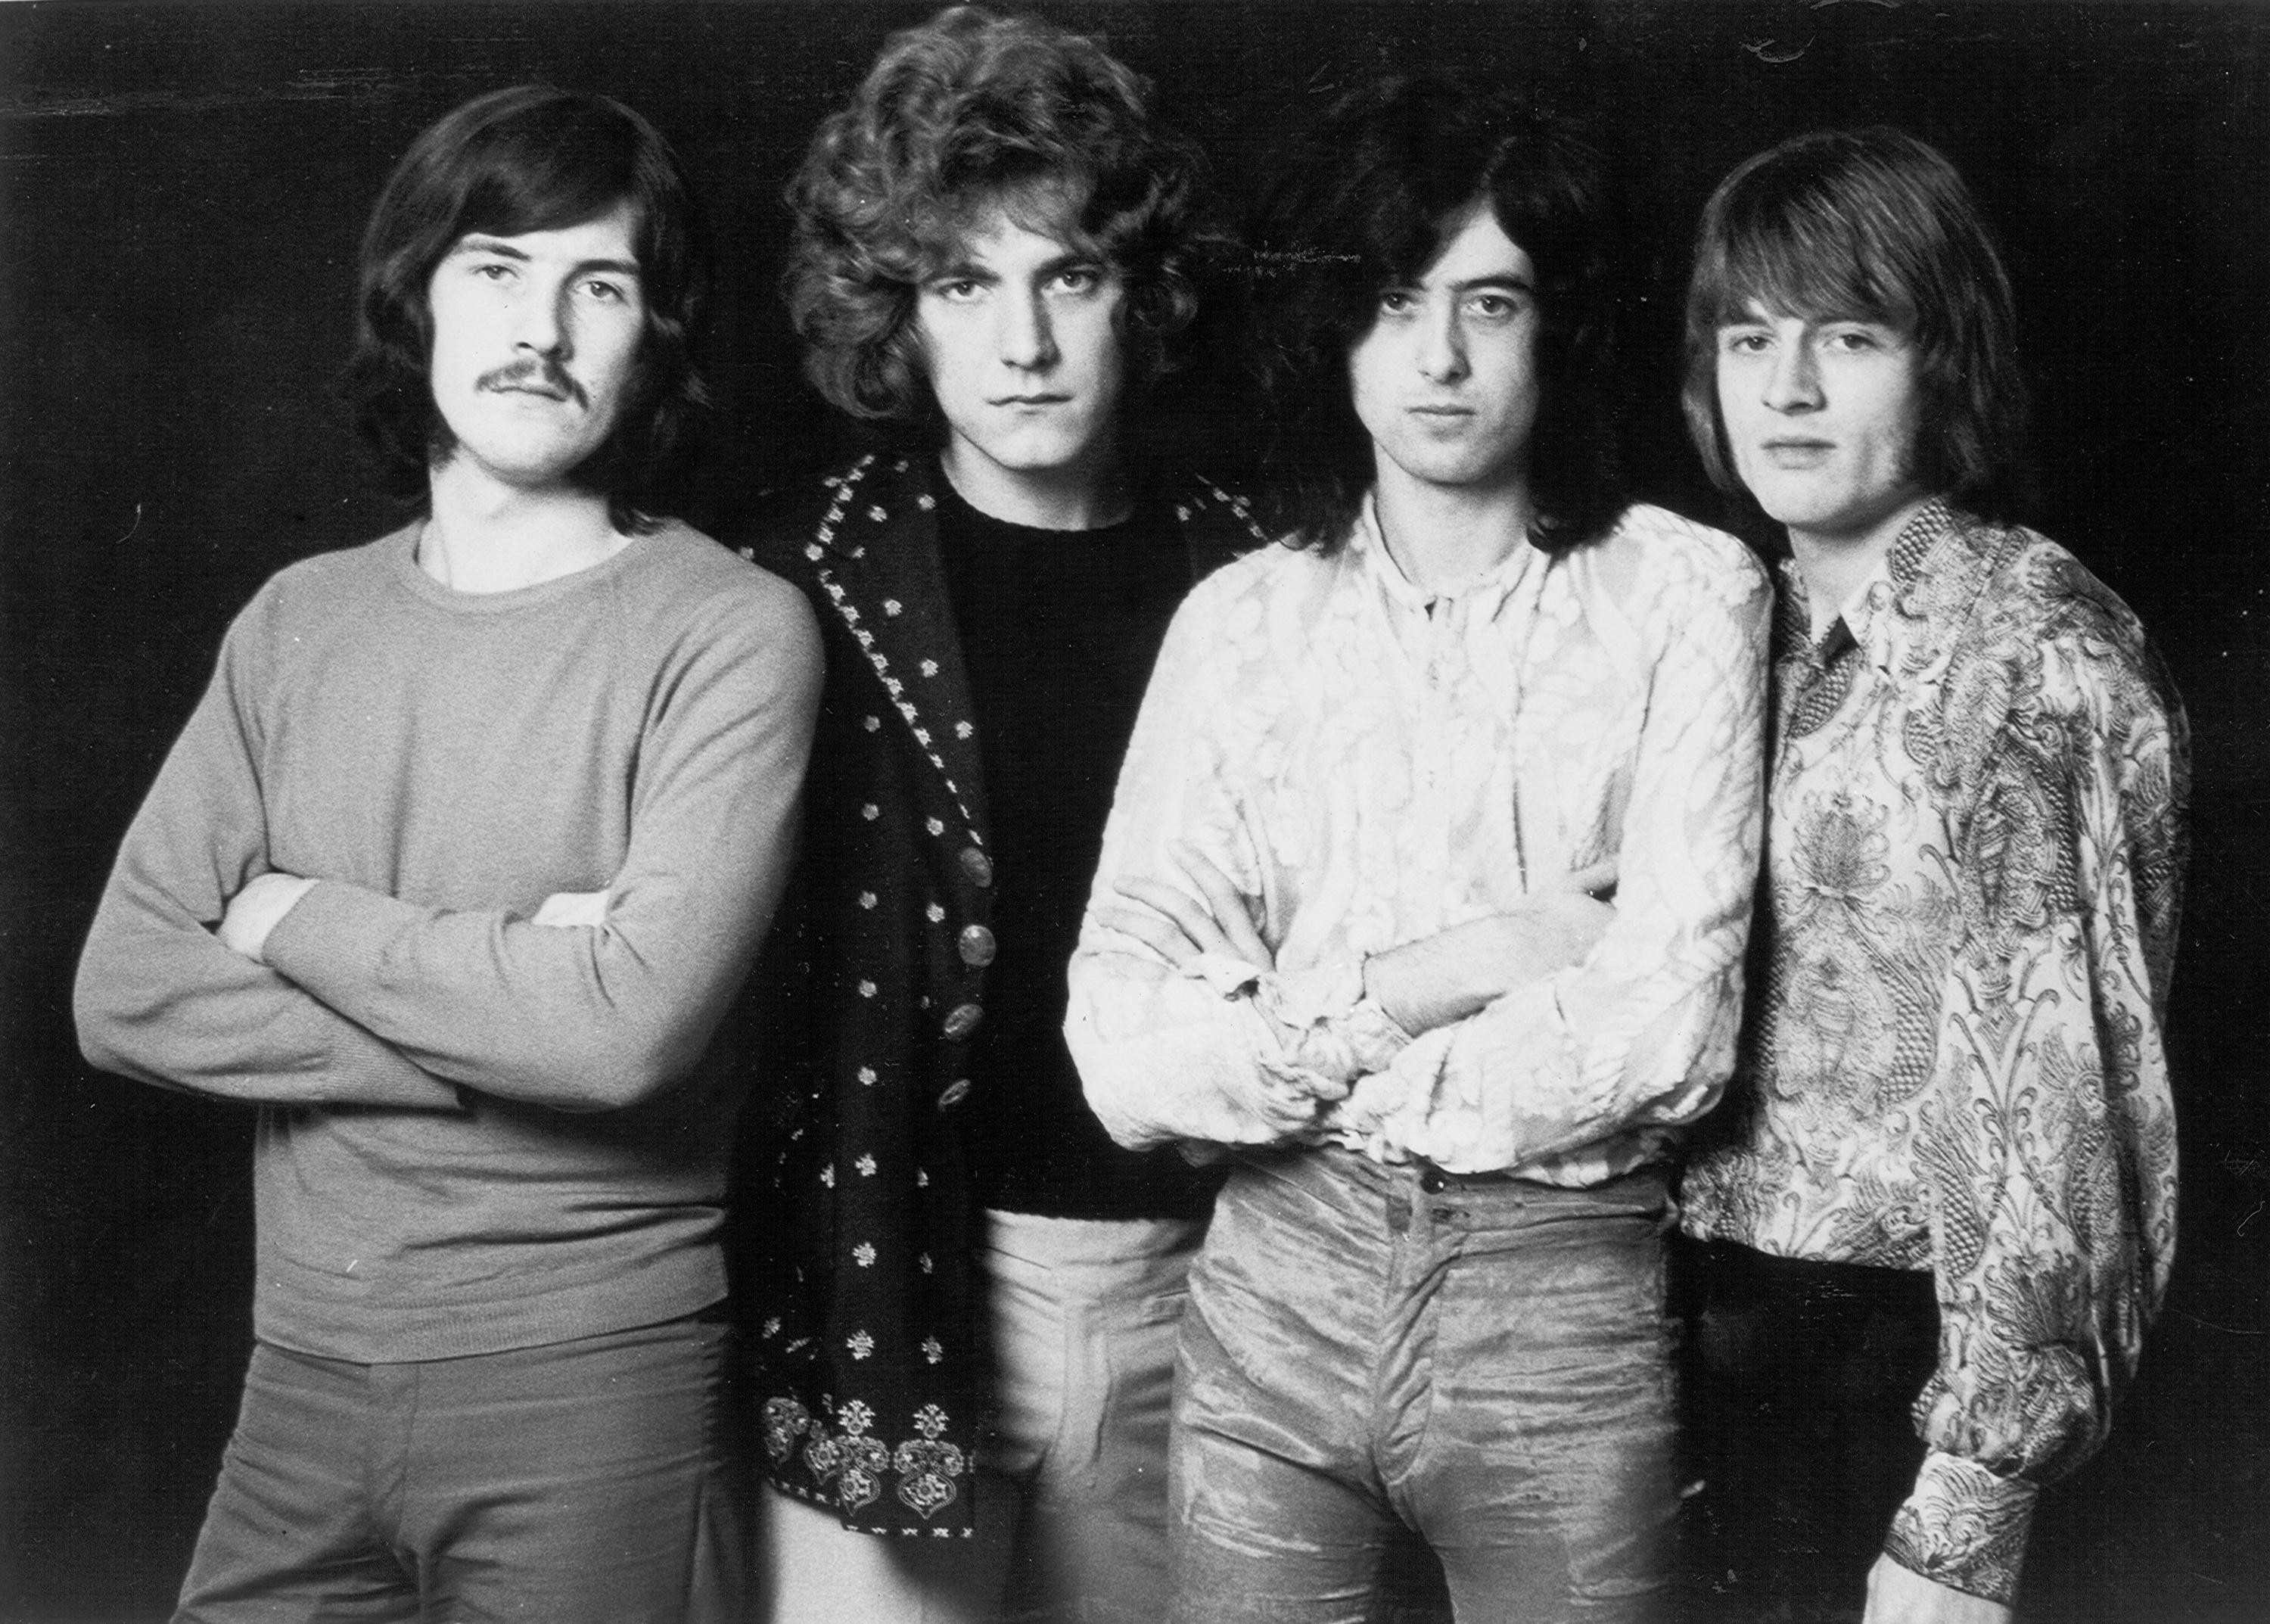 led-zeppelin-stairway-to-heaven-copyright-case-returning-to-trial